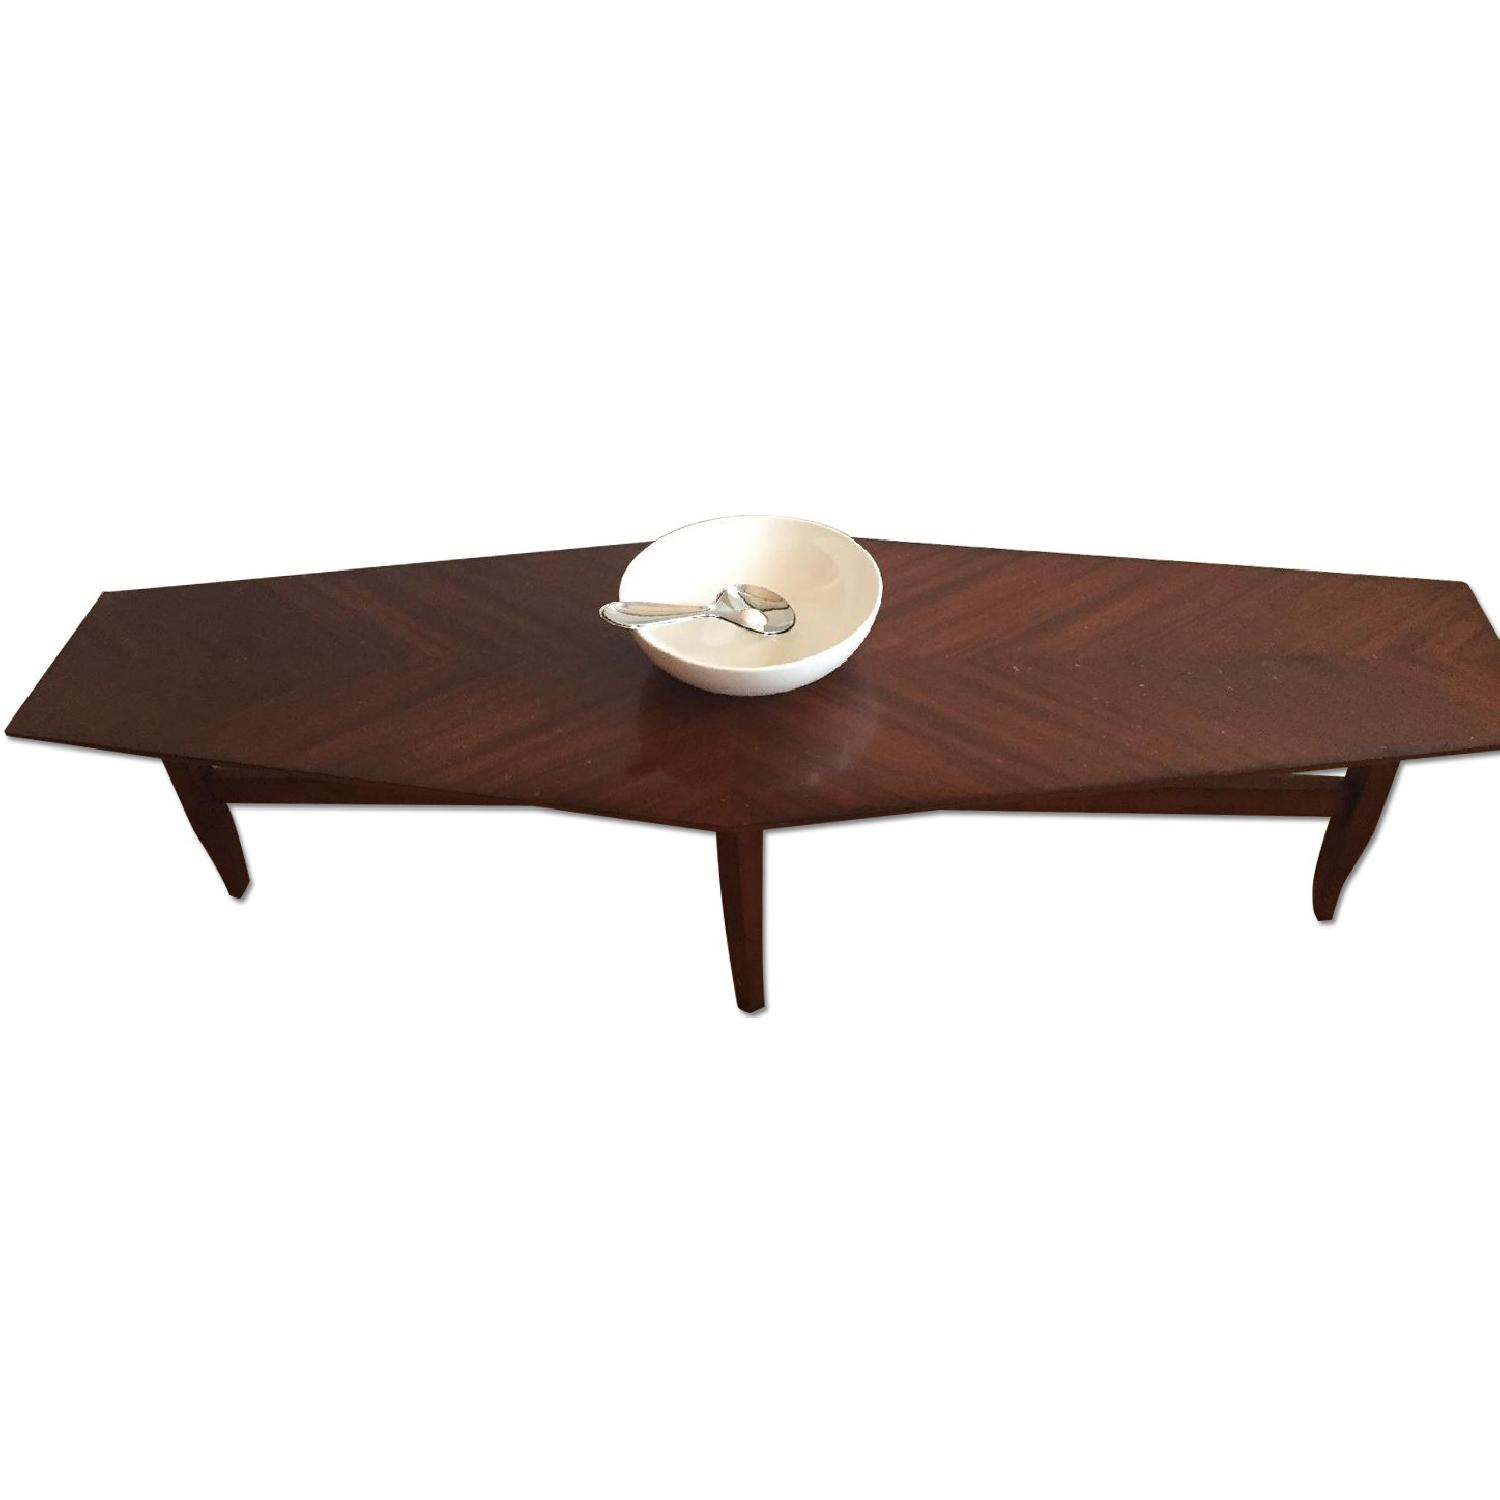 Mitchell Gold + Bob Williams Surfboard Coffee Table - image-0